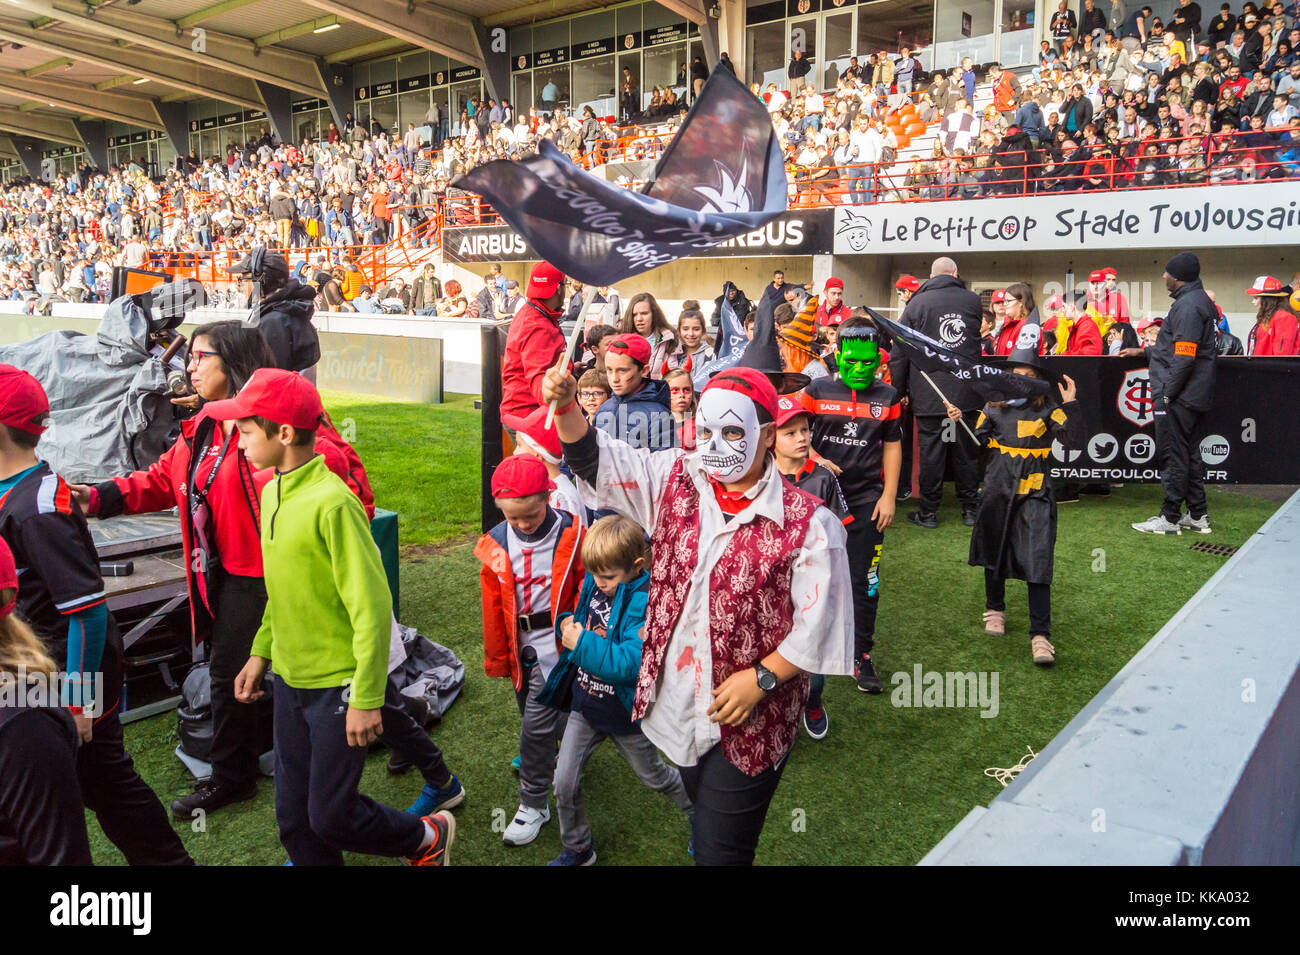 Junior supporters at Ernest Wallon stadium, home ground of Stade Toulousain rugby union team, Toulouse, Haute-Garonne, Stock Photo